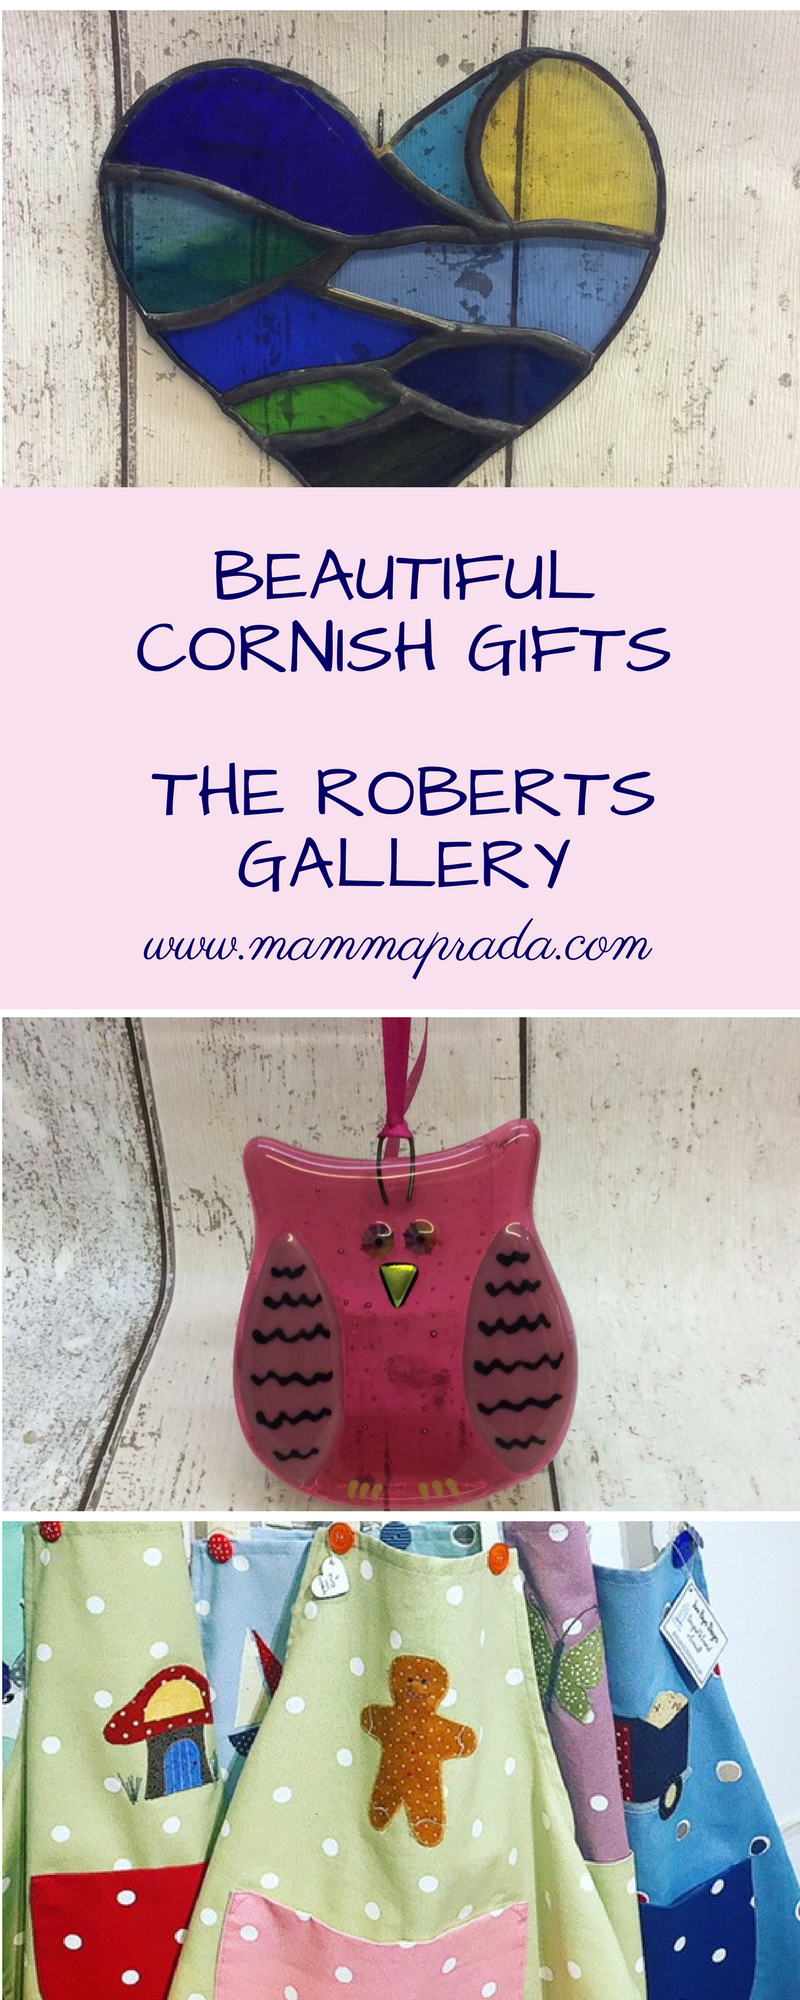 Looking for Cornish Gifts and to support small businesses? This week I did just that